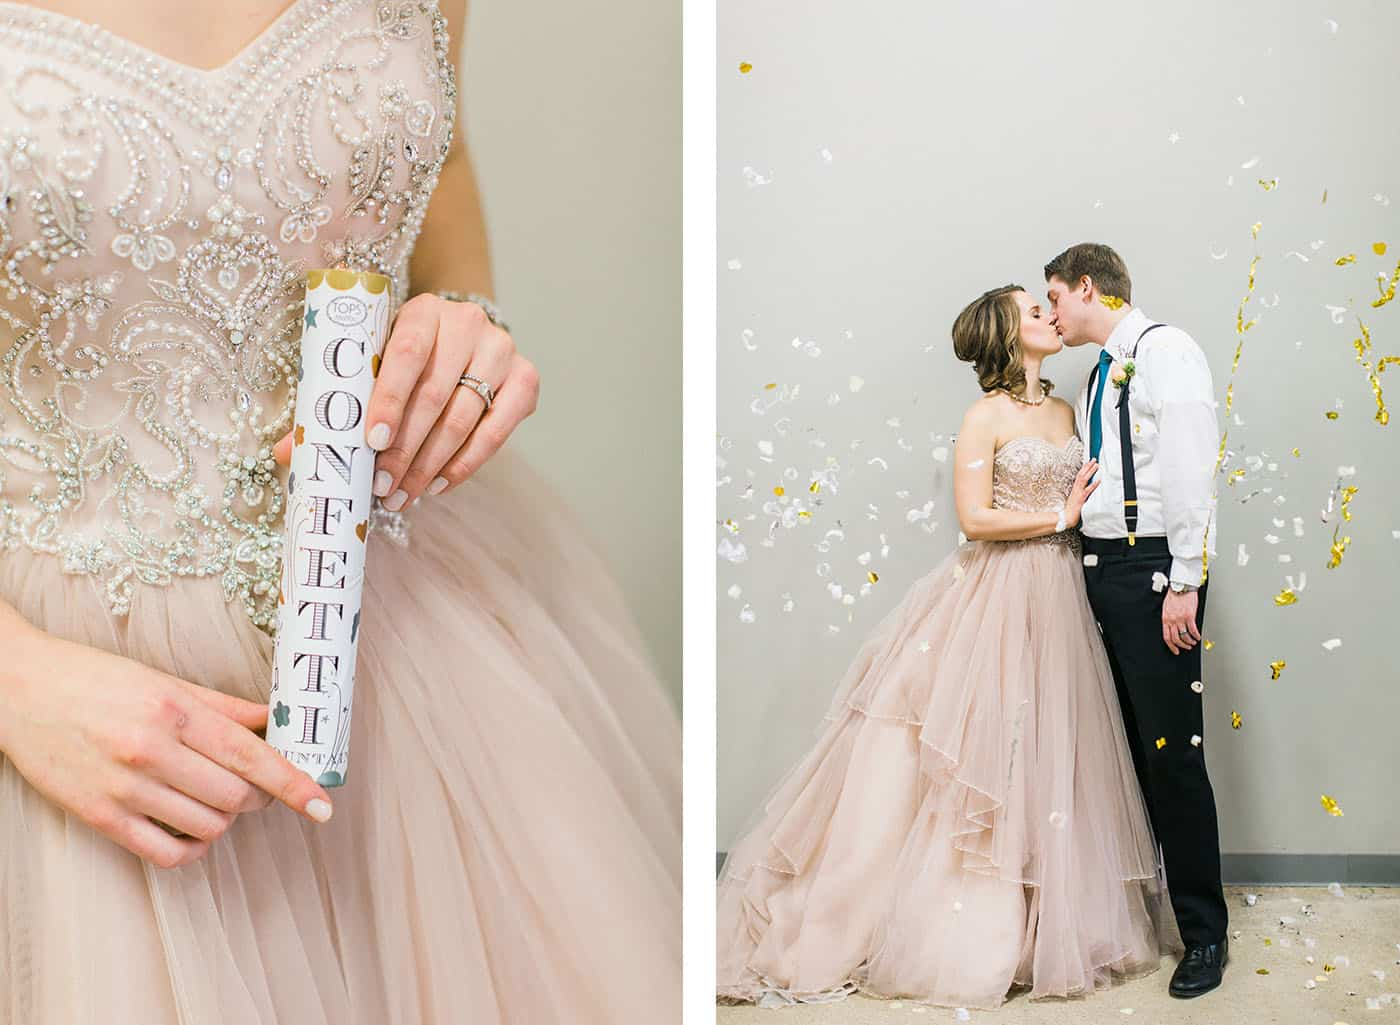 prom wedding couple kissing in confetti rachael osborn client questions